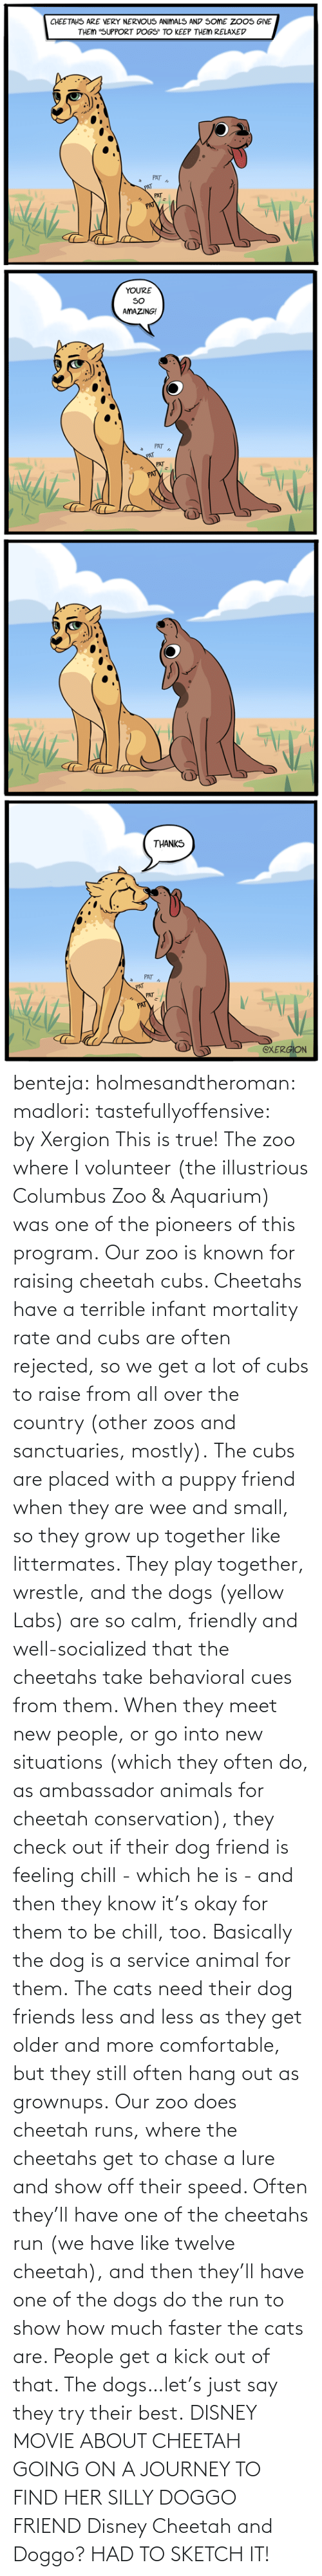 Meet: benteja:  holmesandtheroman:  madlori:  tastefullyoffensive: by Xergion This is true! The zoo where I volunteer (the illustrious Columbus Zoo & Aquarium) was one of the pioneers of this program. Our zoo is known for raising cheetah cubs. Cheetahs have a terrible infant mortality rate and cubs are often rejected, so we get a lot of cubs to raise from all over the country (other zoos and sanctuaries, mostly). The cubs are placed with a puppy friend when they are wee and small, so they grow up together like littermates. They play together, wrestle, and the dogs (yellow Labs) are so calm, friendly and well-socialized that the cheetahs take behavioral cues from them. When they meet new people, or go into new situations (which they often do, as ambassador animals for cheetah conservation), they check out if their dog friend is feeling chill - which he is - and then they know it's okay for them to be chill, too. Basically the dog is a service animal for them. The cats need their dog friends less and less as they get older and more comfortable, but they still often hang out as grownups. Our zoo does cheetah runs, where the cheetahs get to chase a lure and show off their speed. Often they'll have one of the cheetahs run (we have like twelve cheetah), and then they'll have one of the dogs do the run to show how much faster the cats are. People get a kick out of that. The dogs…let's just say they try their best.   DISNEY MOVIE ABOUT CHEETAH GOING ON A JOURNEY TO FIND HER SILLY DOGGO FRIEND  Disney Cheetah and Doggo? HAD TO SKETCH IT!